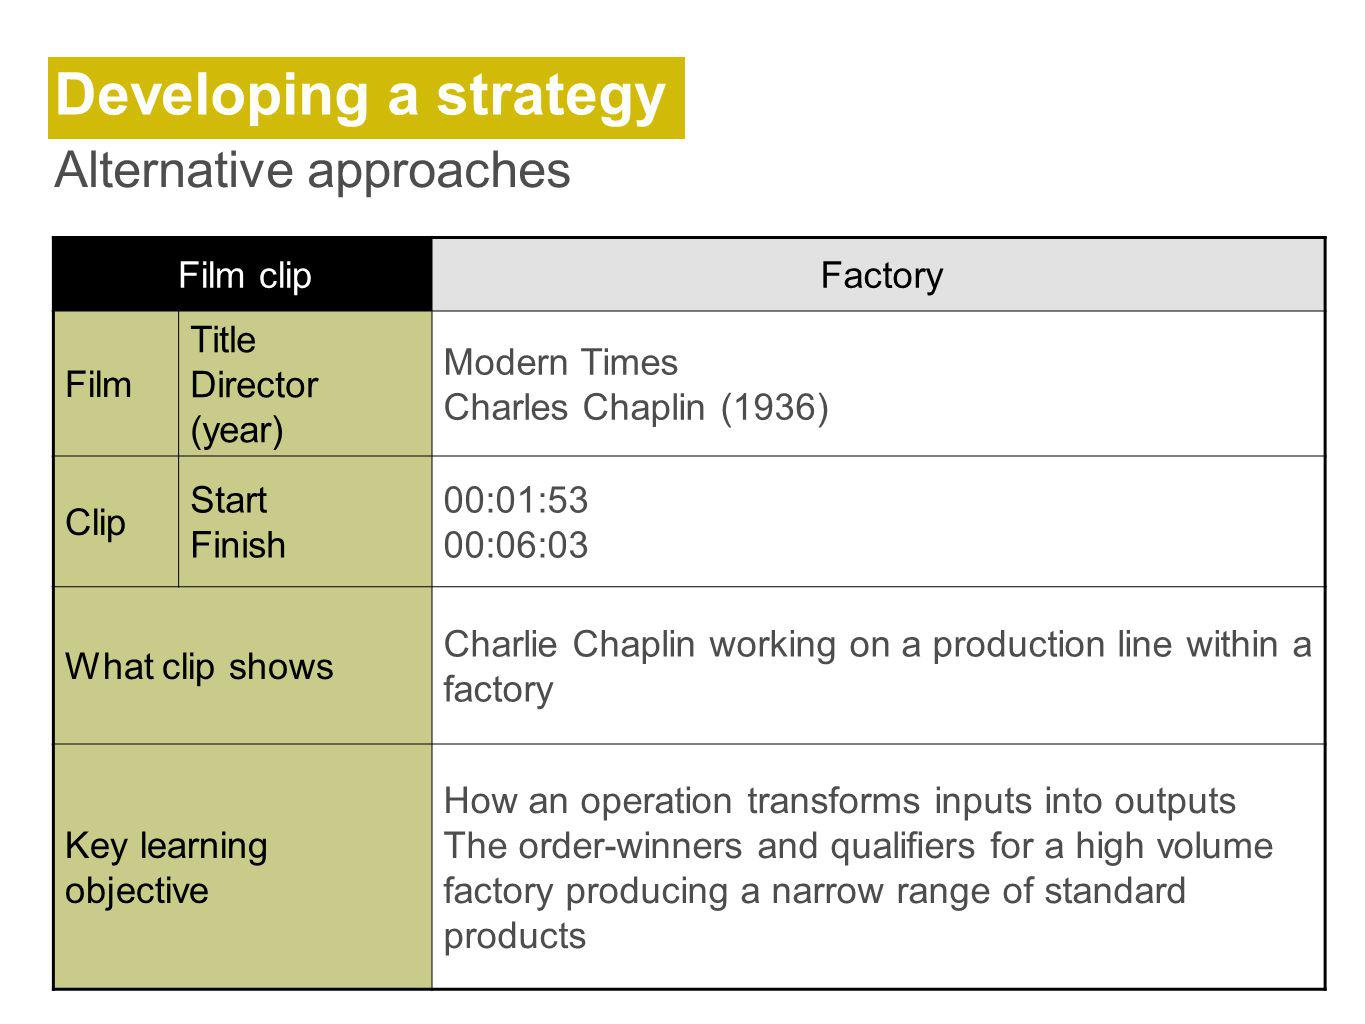 Developing a strategy Alternative approaches Film clipFactory Film Title Director (year) Modern Times Charles Chaplin (1936) Clip Start Finish 00:01:53 00:06:03 What clip shows Charlie Chaplin working on a production line within a factory Key learning objective How an operation transforms inputs into outputs The order-winners and qualifiers for a high volume factory producing a narrow range of standard products